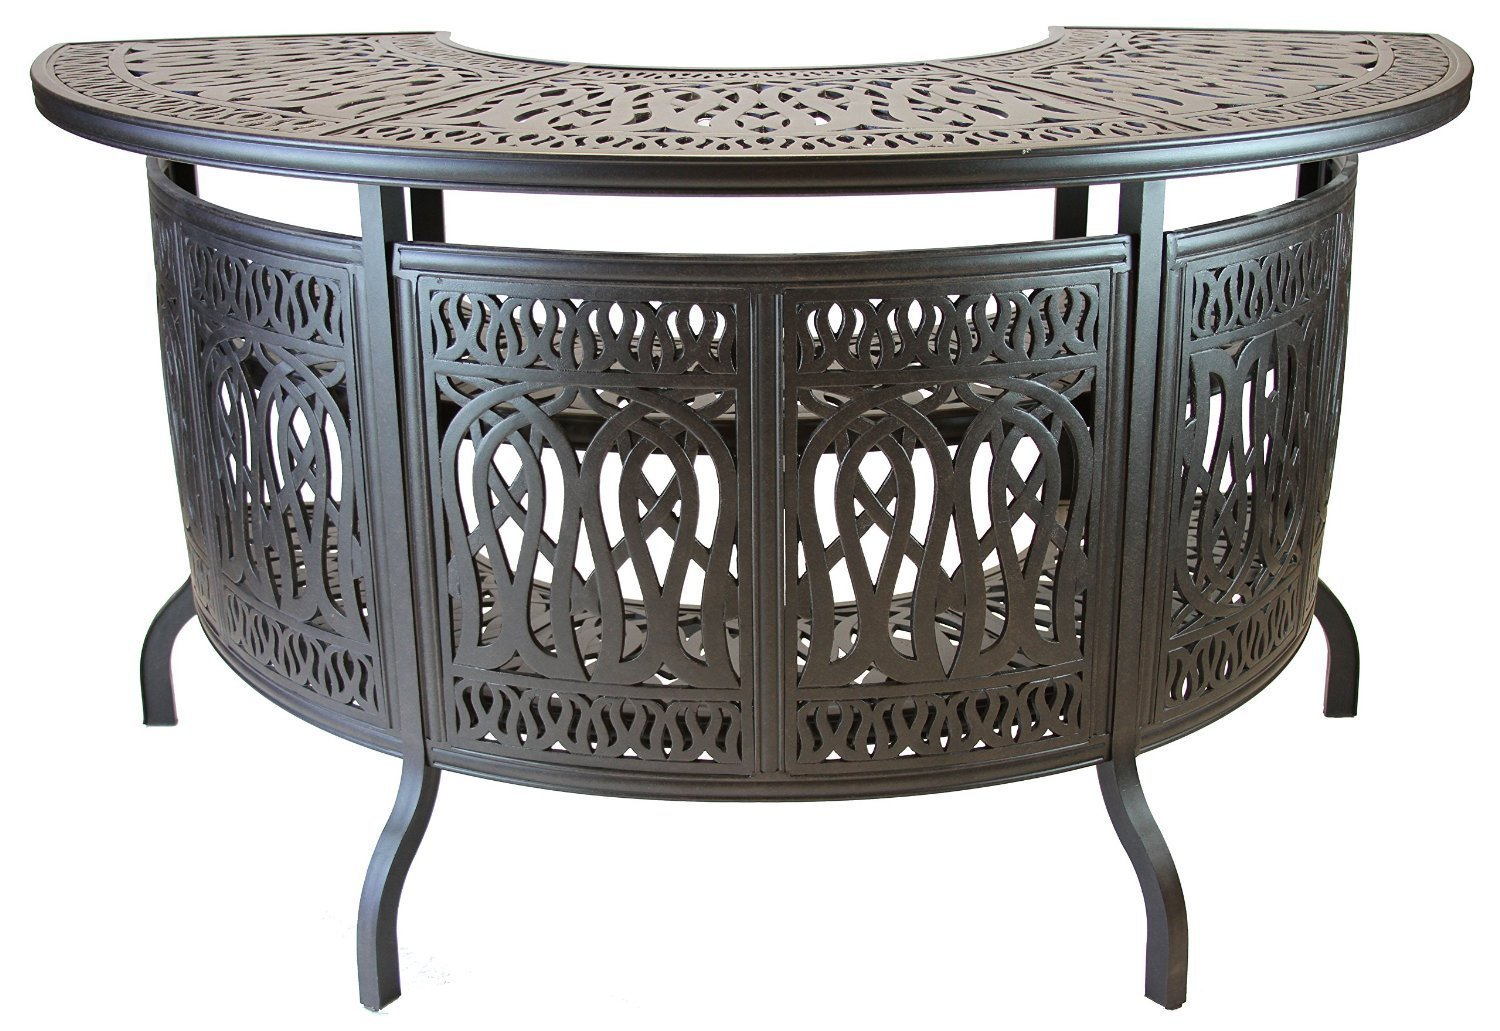 K&B PATIO LD777W Elizabeth Bar Table, Antique Bronze